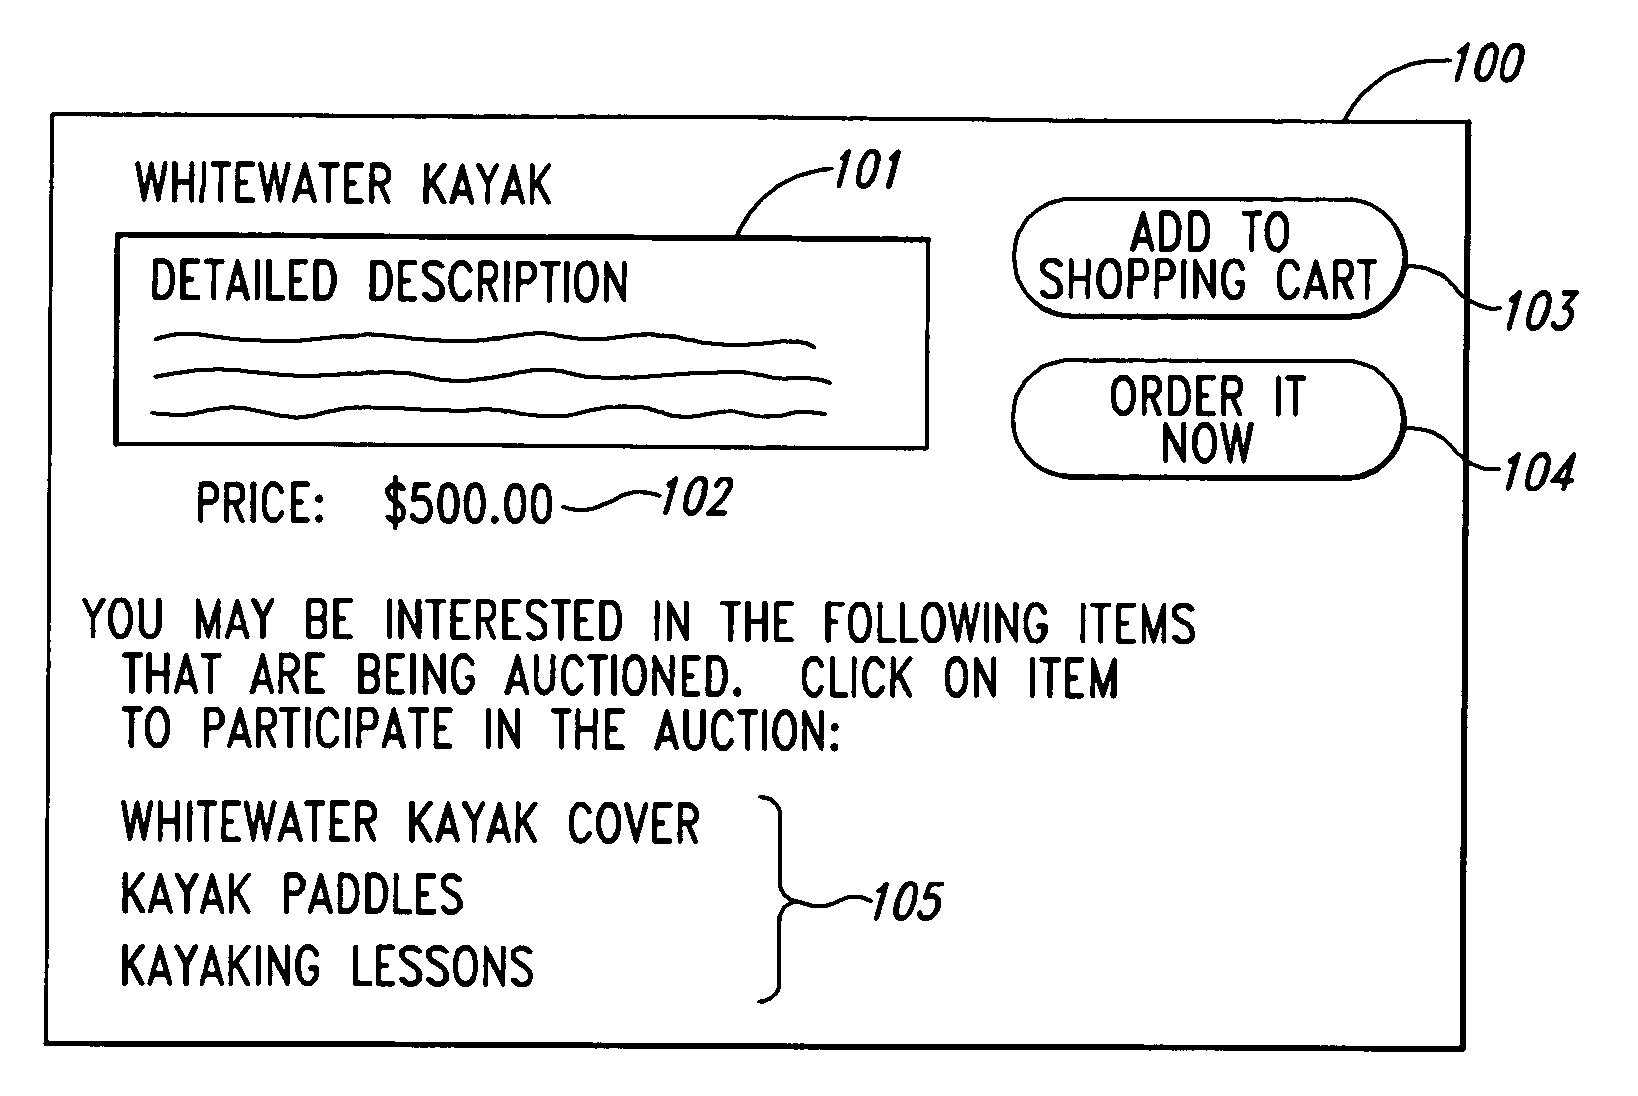 Amazon  patent by Jeff Bezos from 2006 for method and system for publicizing commercial transactions on a computer network - US7107227